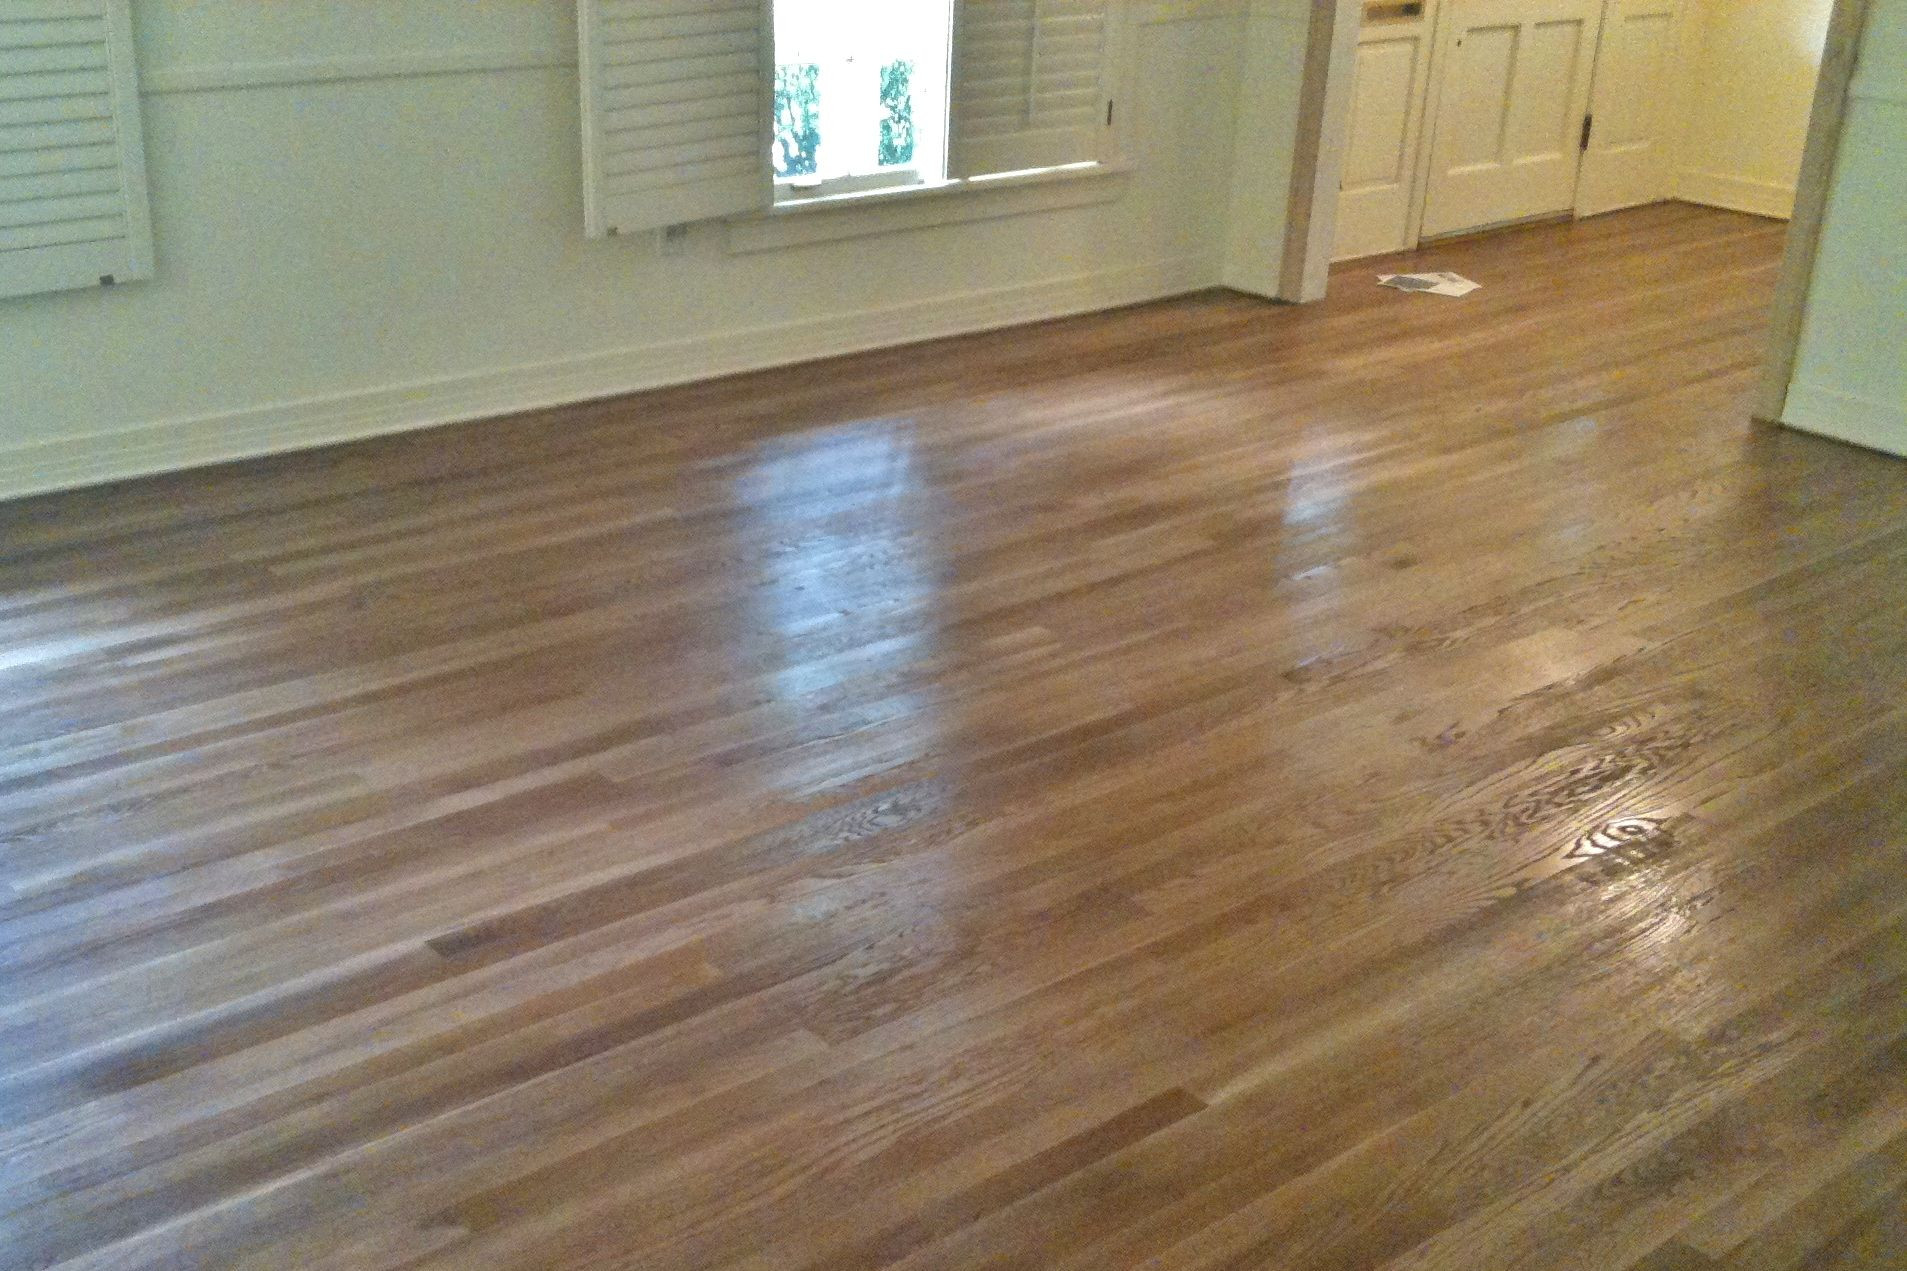 sanding and refinishing hardwood floors diy of oak meet special walnut home design pinterest flooring with regard to minwax special walnut stain on oak hardwood floors